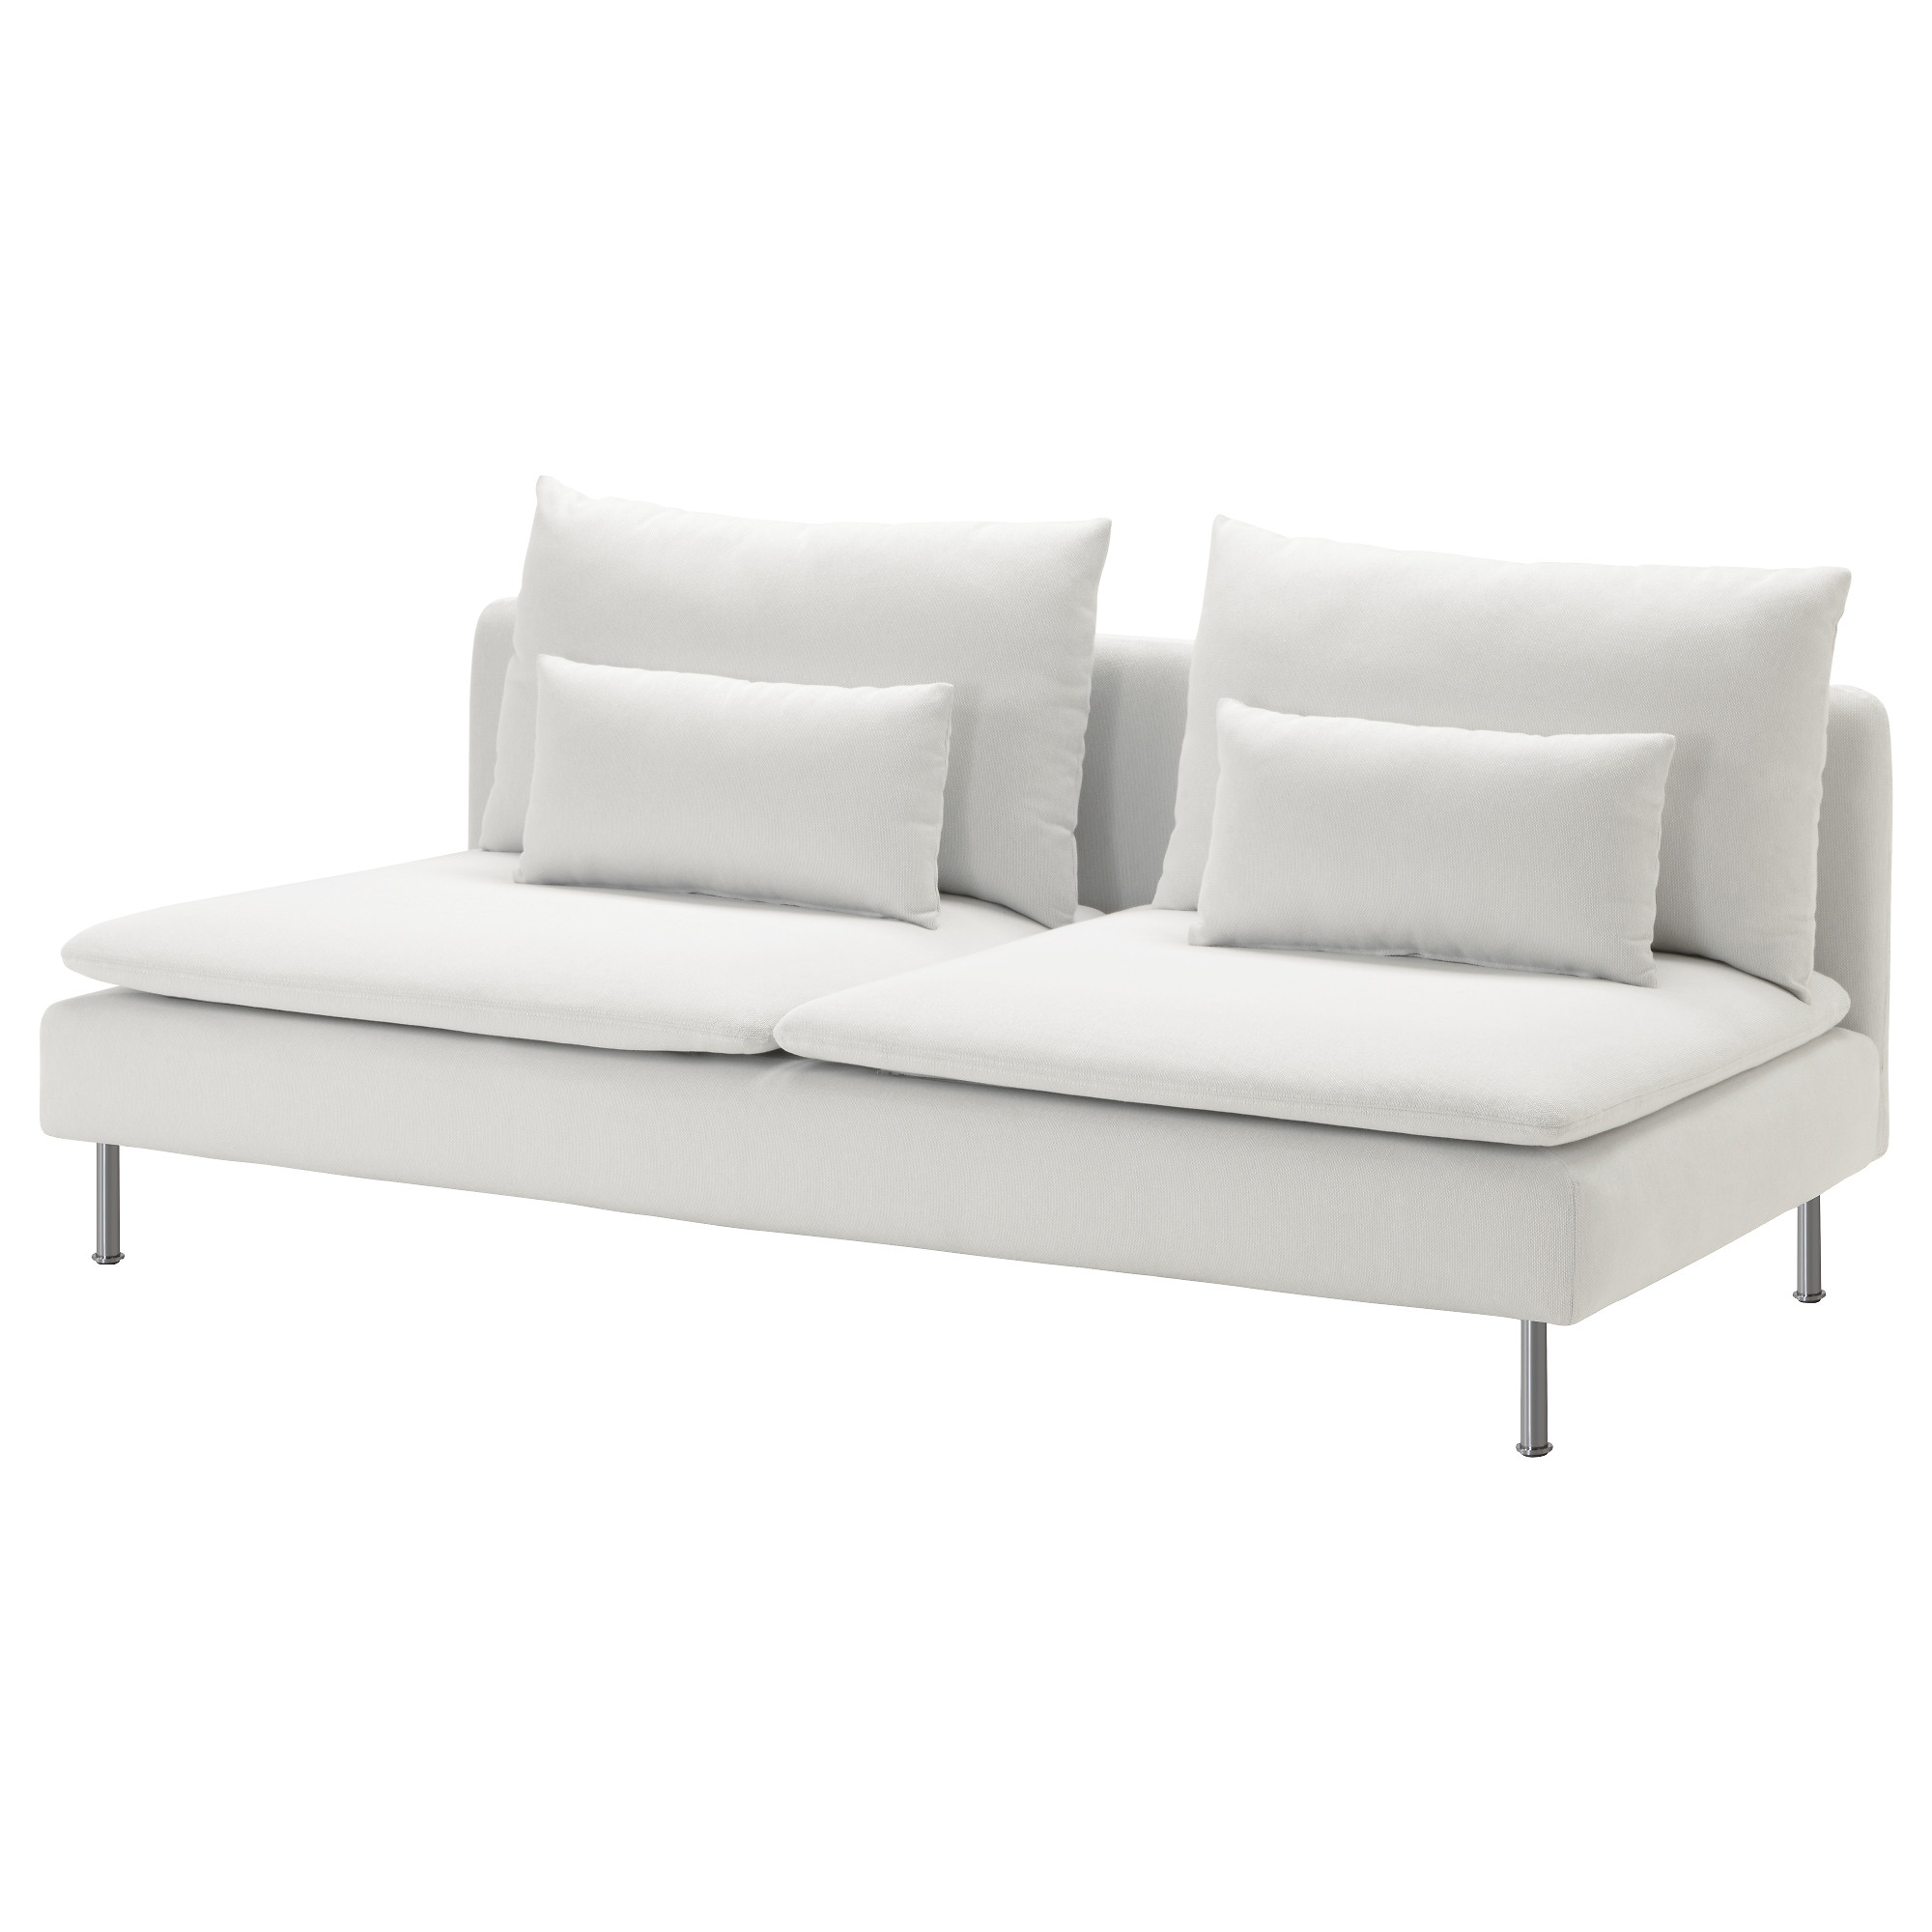 Couch Depth sÖderhamn sofa section - finnsta white - ikea